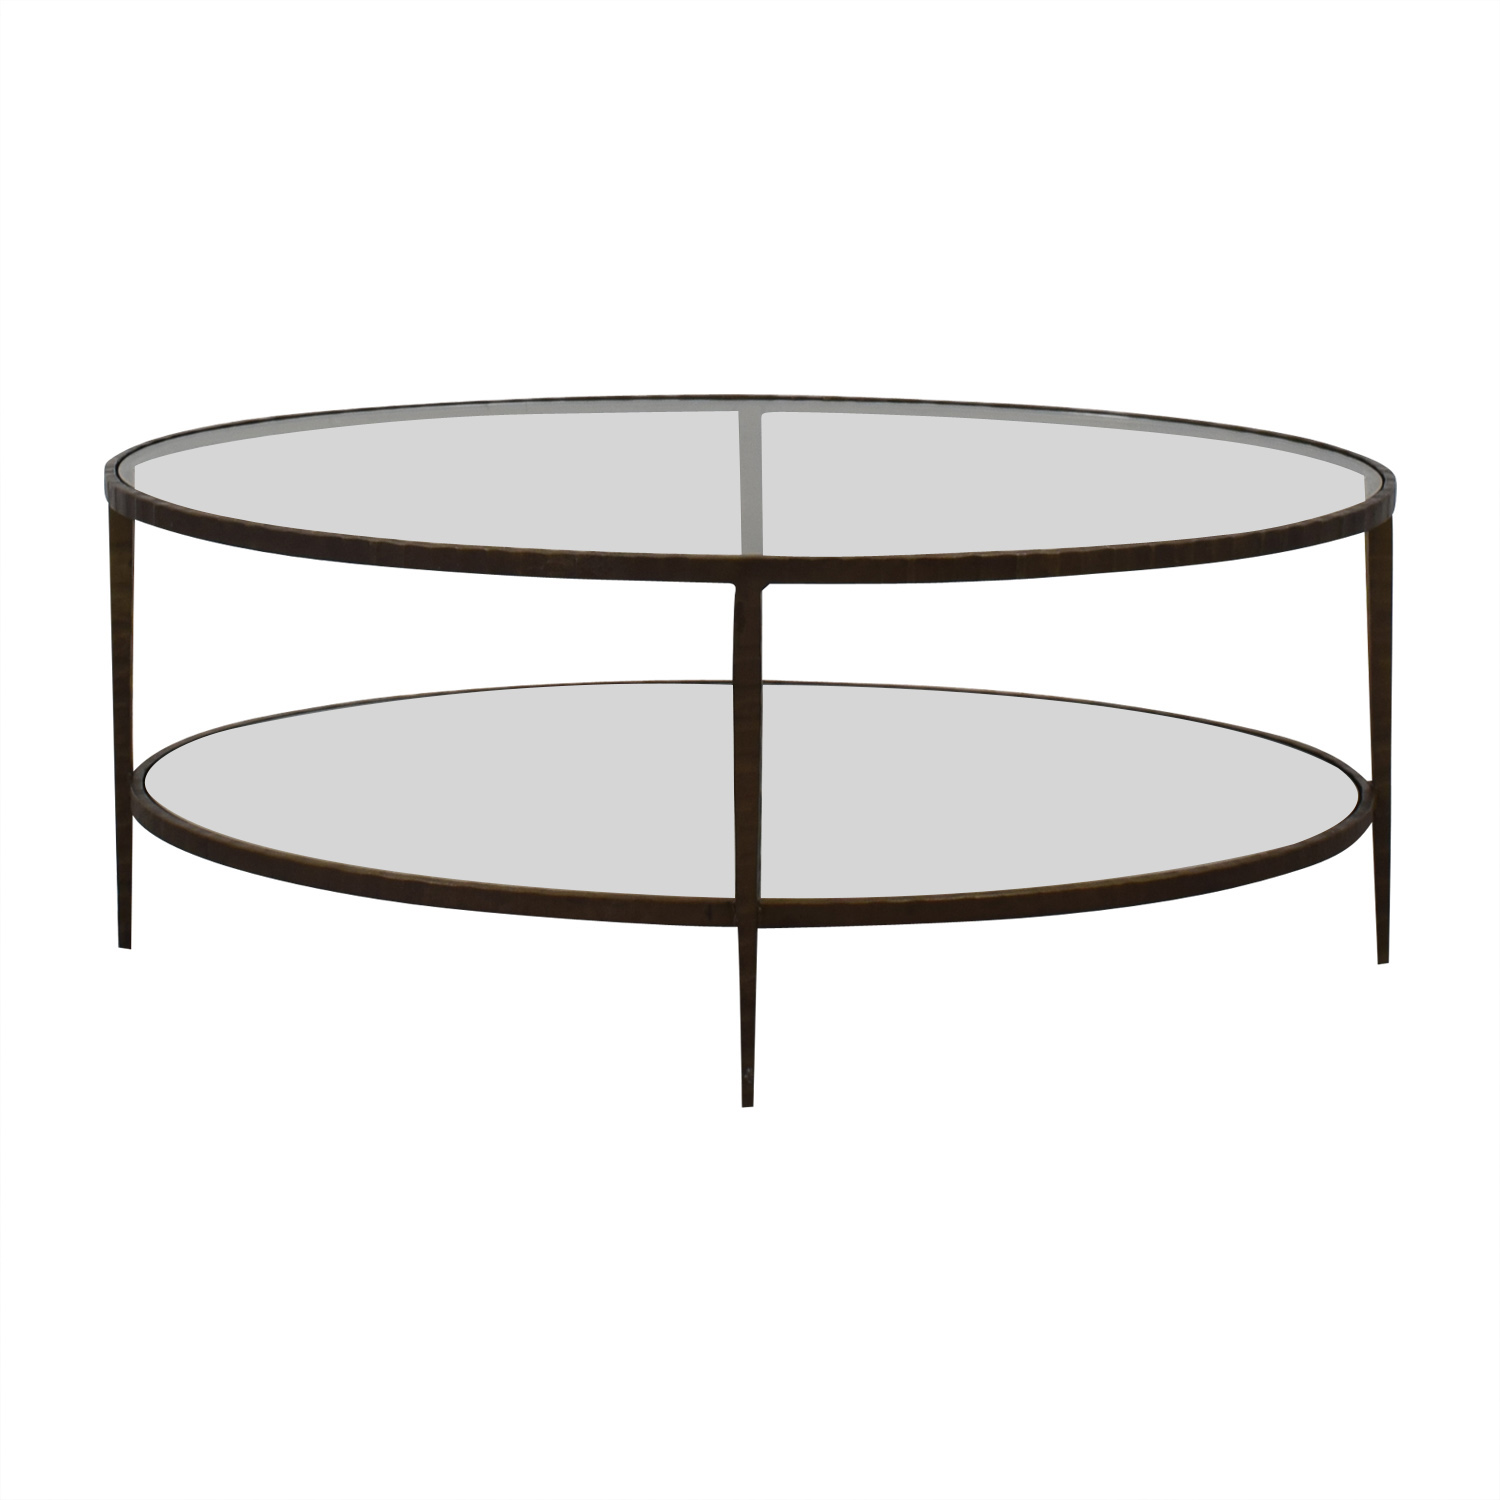 Crate & Barrel Coffee Table / Tables